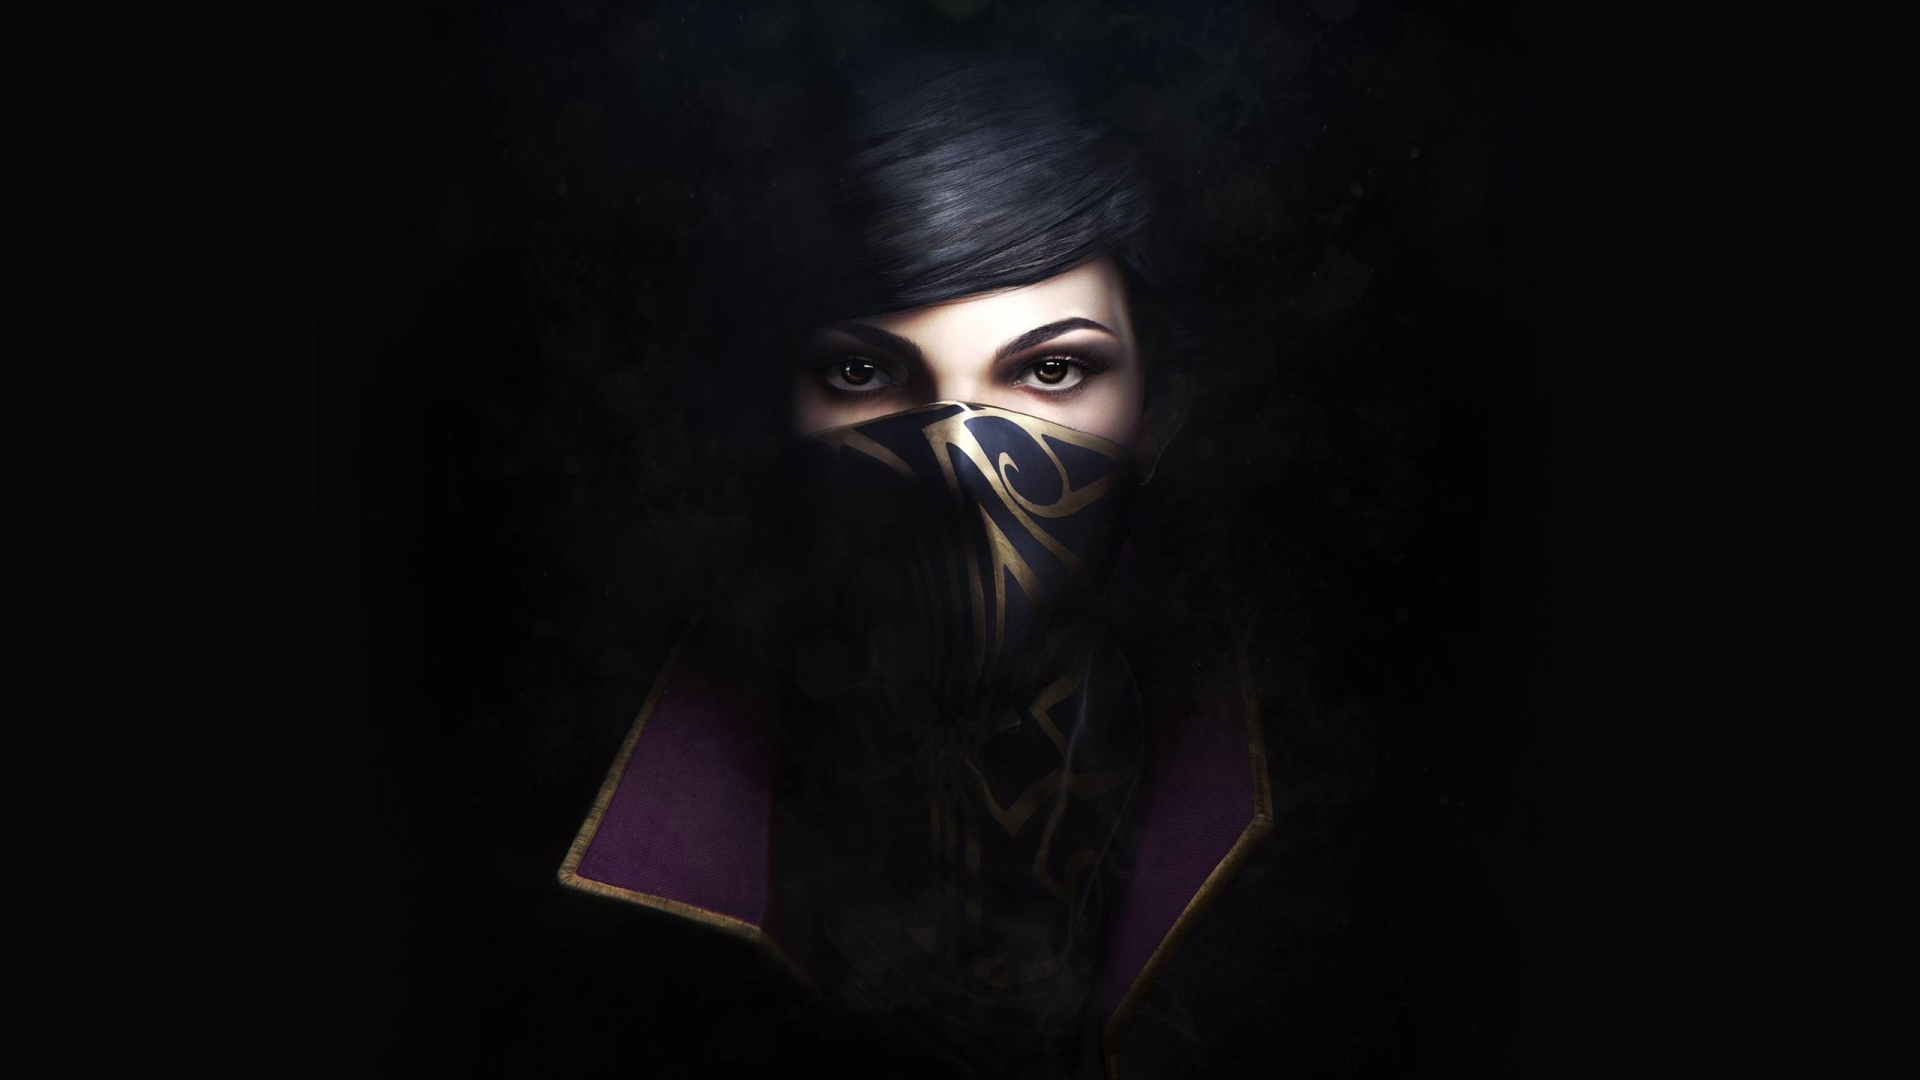 Dishonored Dishonored 2 Emily Kaldwin Stealth HD Wallpaper 1920x1080